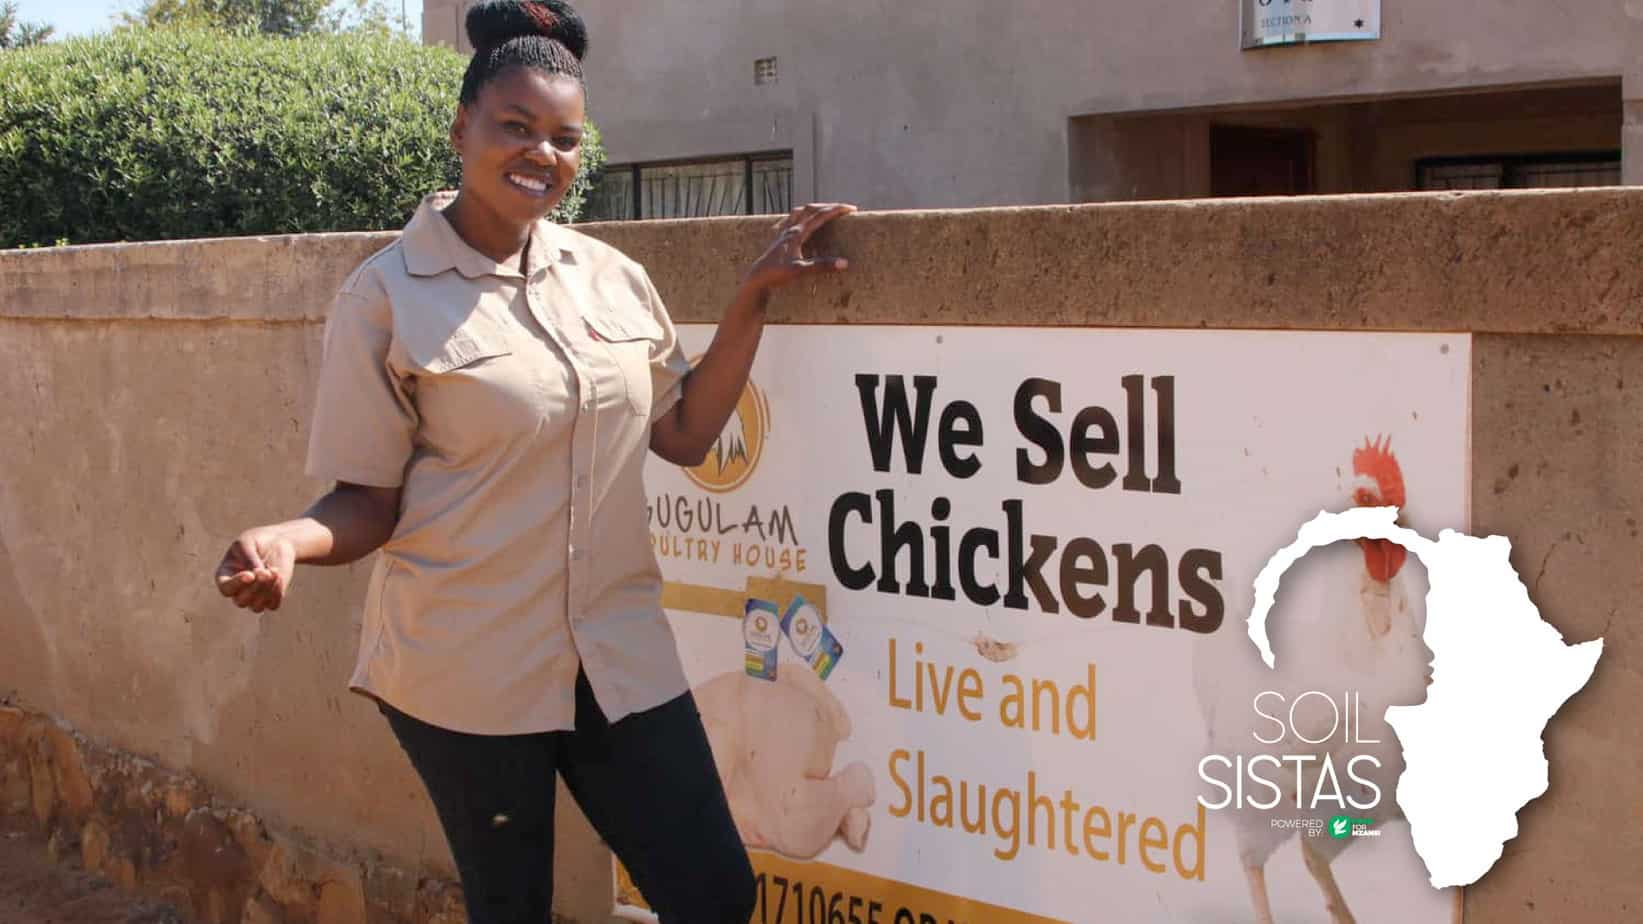 This week on #SoilSistas we meet Khetiwe Maseko, a farmer who started out working as a domestic worker. She poured blood, sweat and tears into her agribusiness. Today, she's on the way up thanks to Corteva Agriscience and GIBS. Photo: Khethiwe Maseko is a poultry farmer based in Bronkhorstspruit, east of Pretoria. From a young age, she aspired to be a businesswoman and eventually found her feet in agriculture. Photo: In 2019, Khethiwe Maseko won R30 000 from the department of agriculture and rural development to grow her poultry business. Photo: Magnificent Mndebele/Food For Mzansi